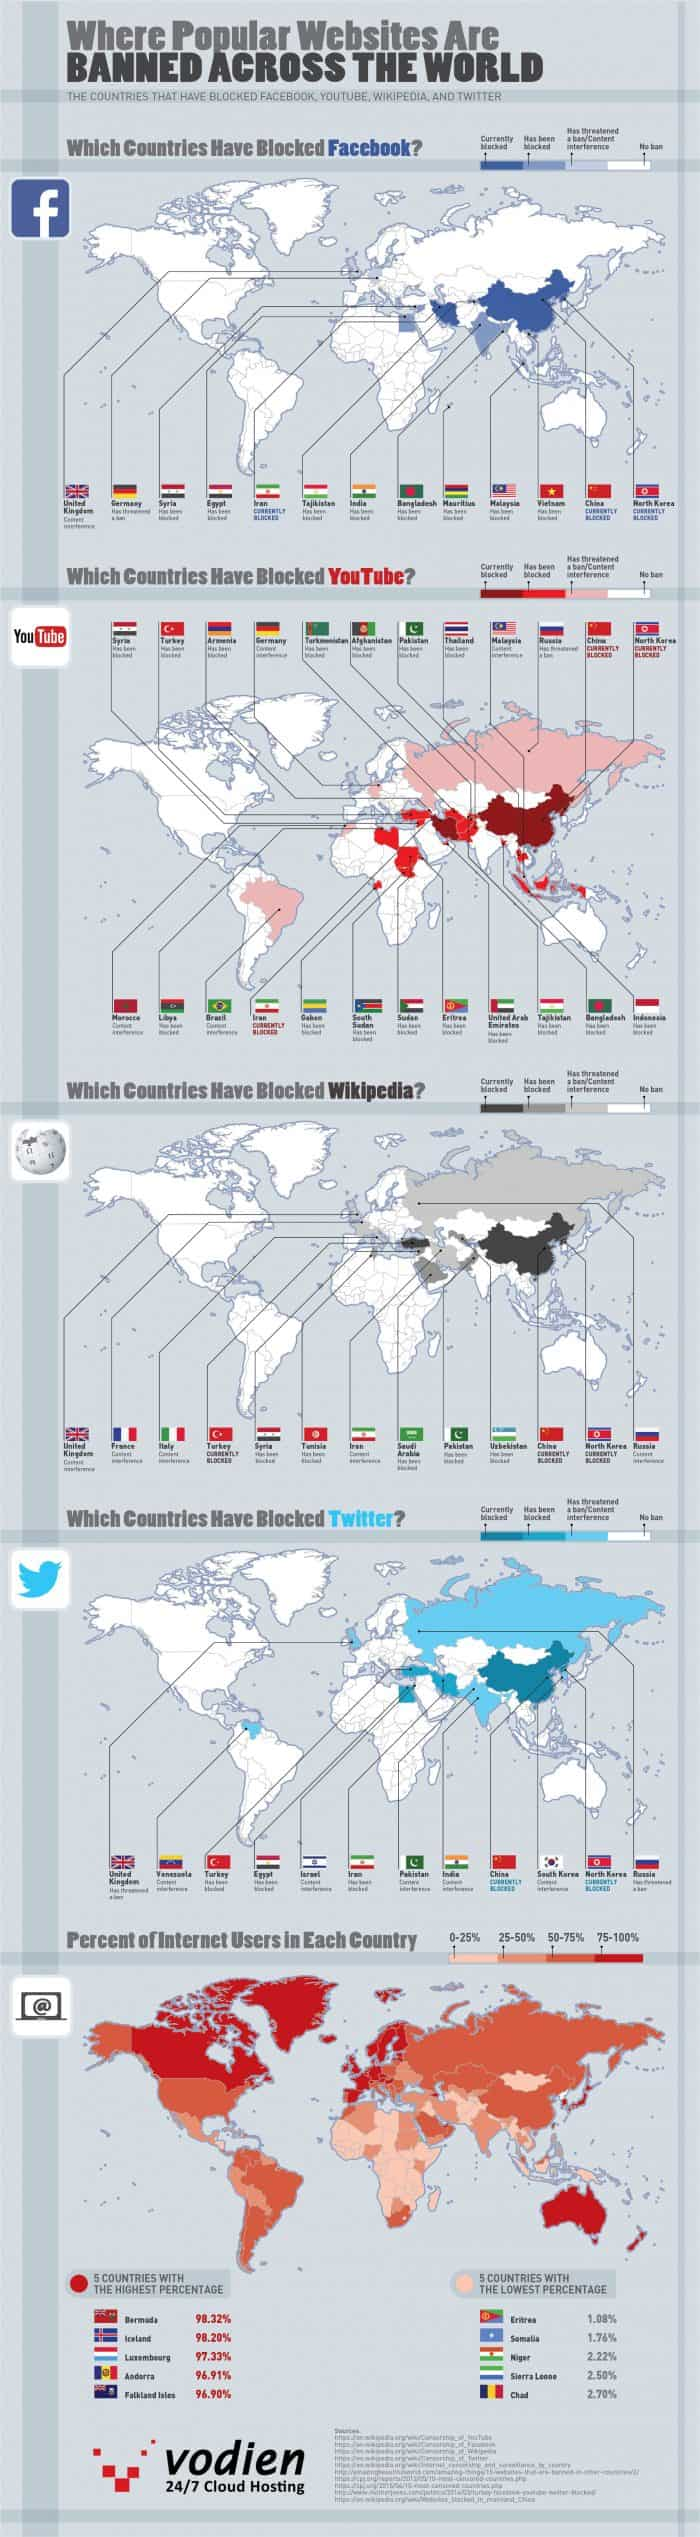 a list of Countries that ban or censor the content of popular websites